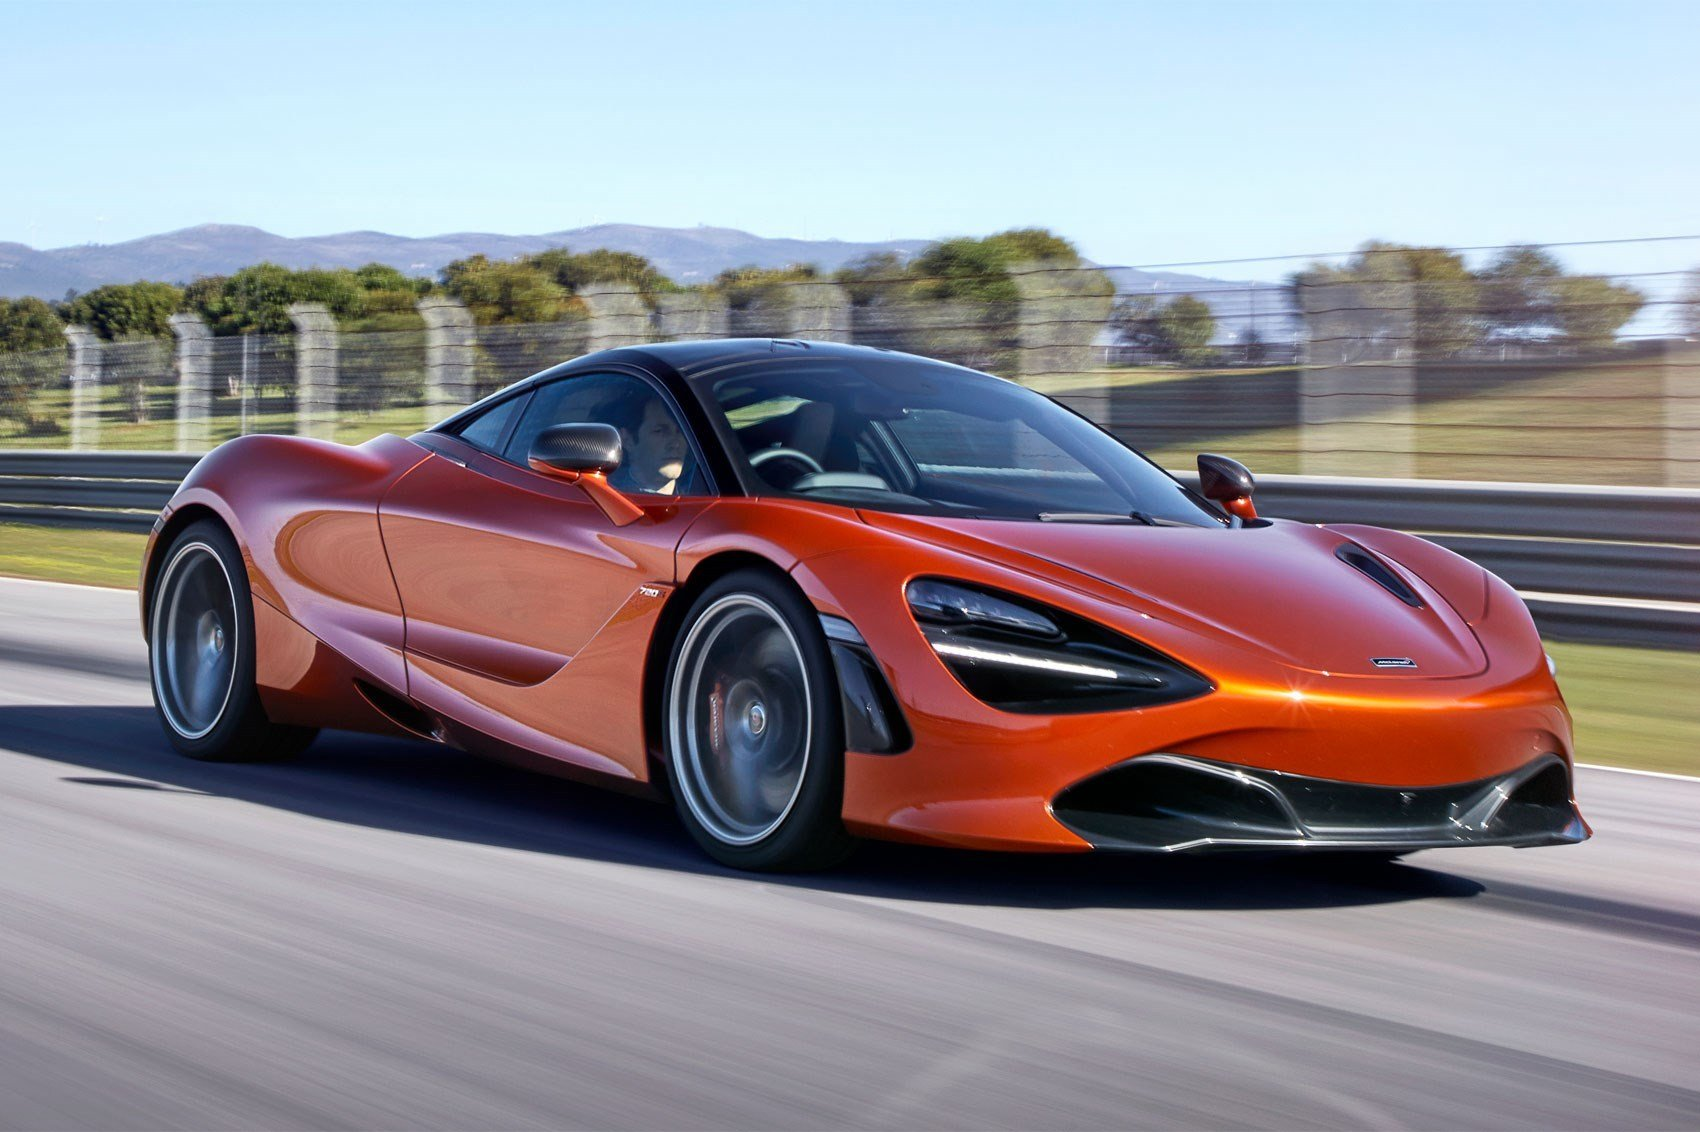 Latest Mclaren Storms Into Geneva With New 720S Supercar By Car Free Download